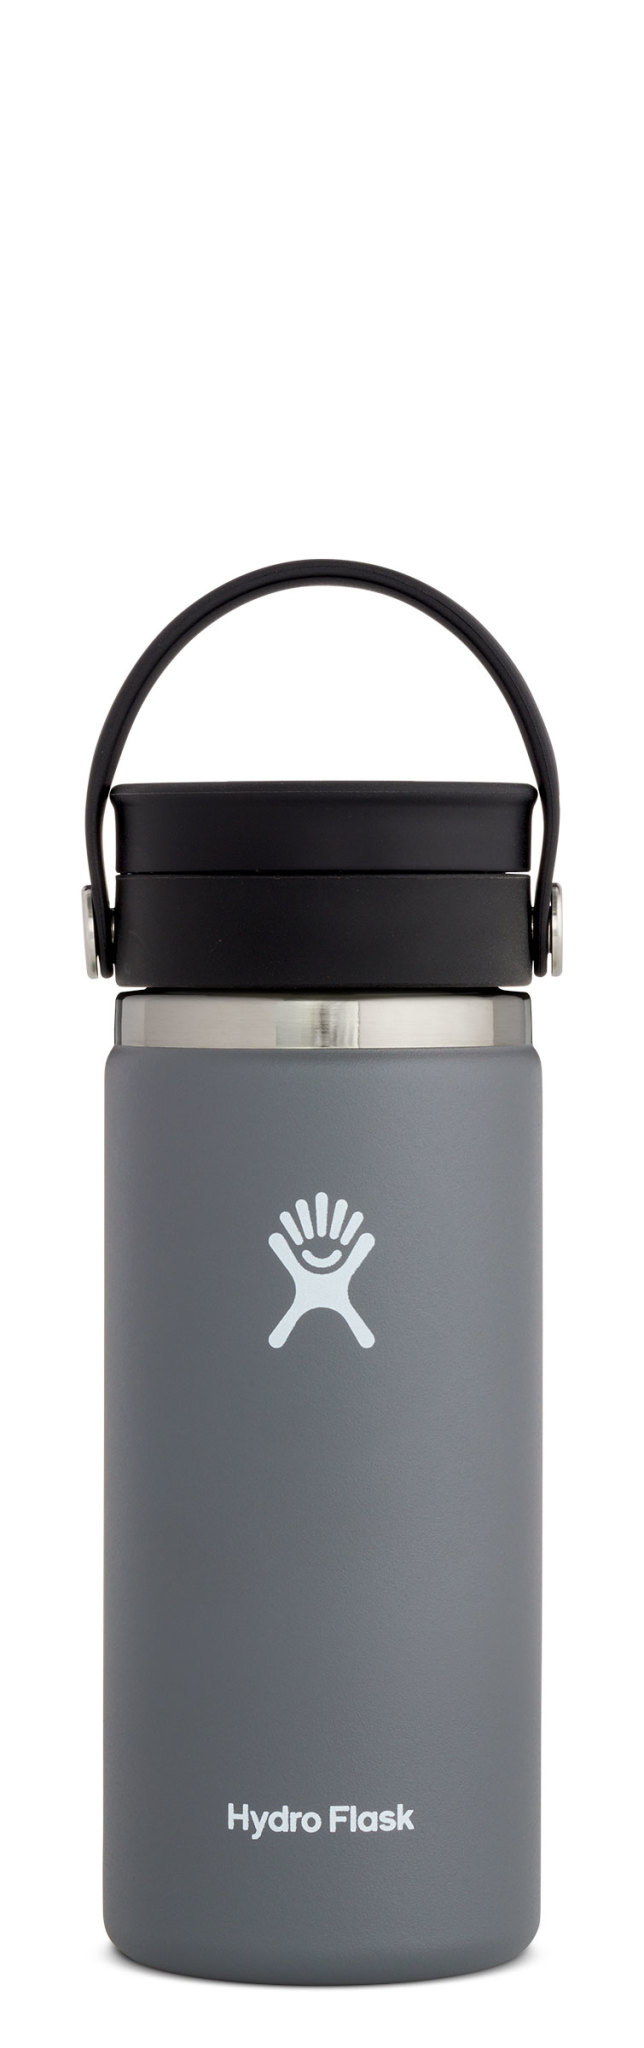 Hydro Flask 16oz Wide Mouth with Flex Sip Lid-5